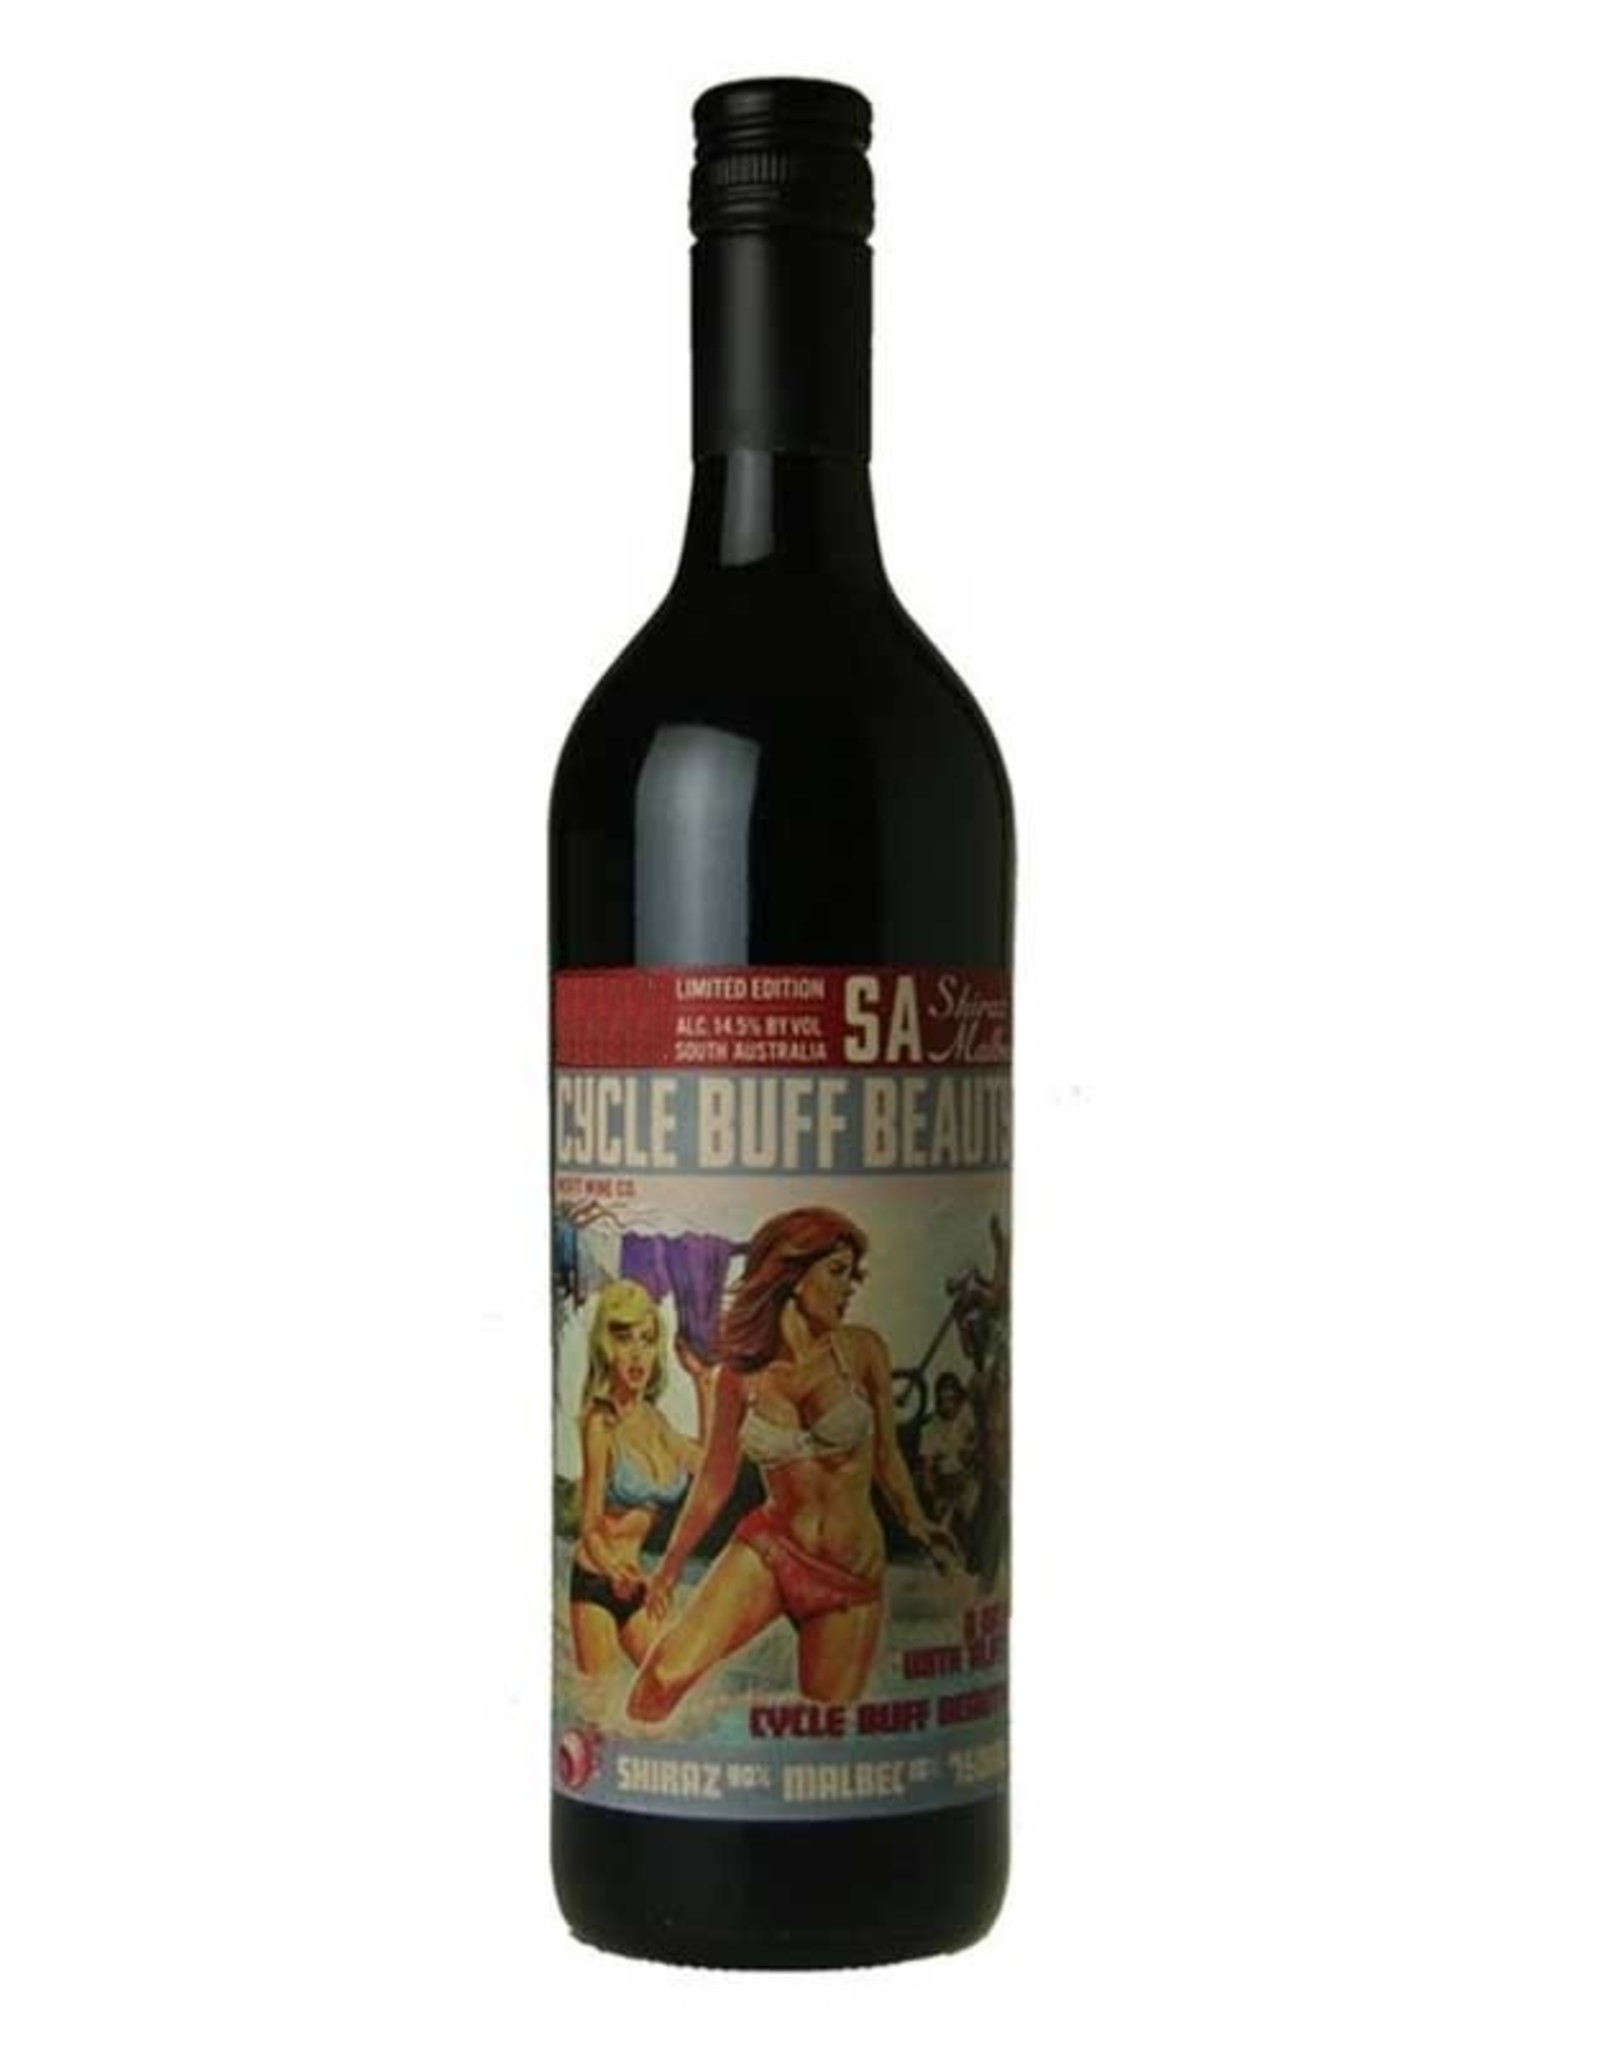 Australia Cycle Buff Beauty Shiraz Cabernet Sauvignon